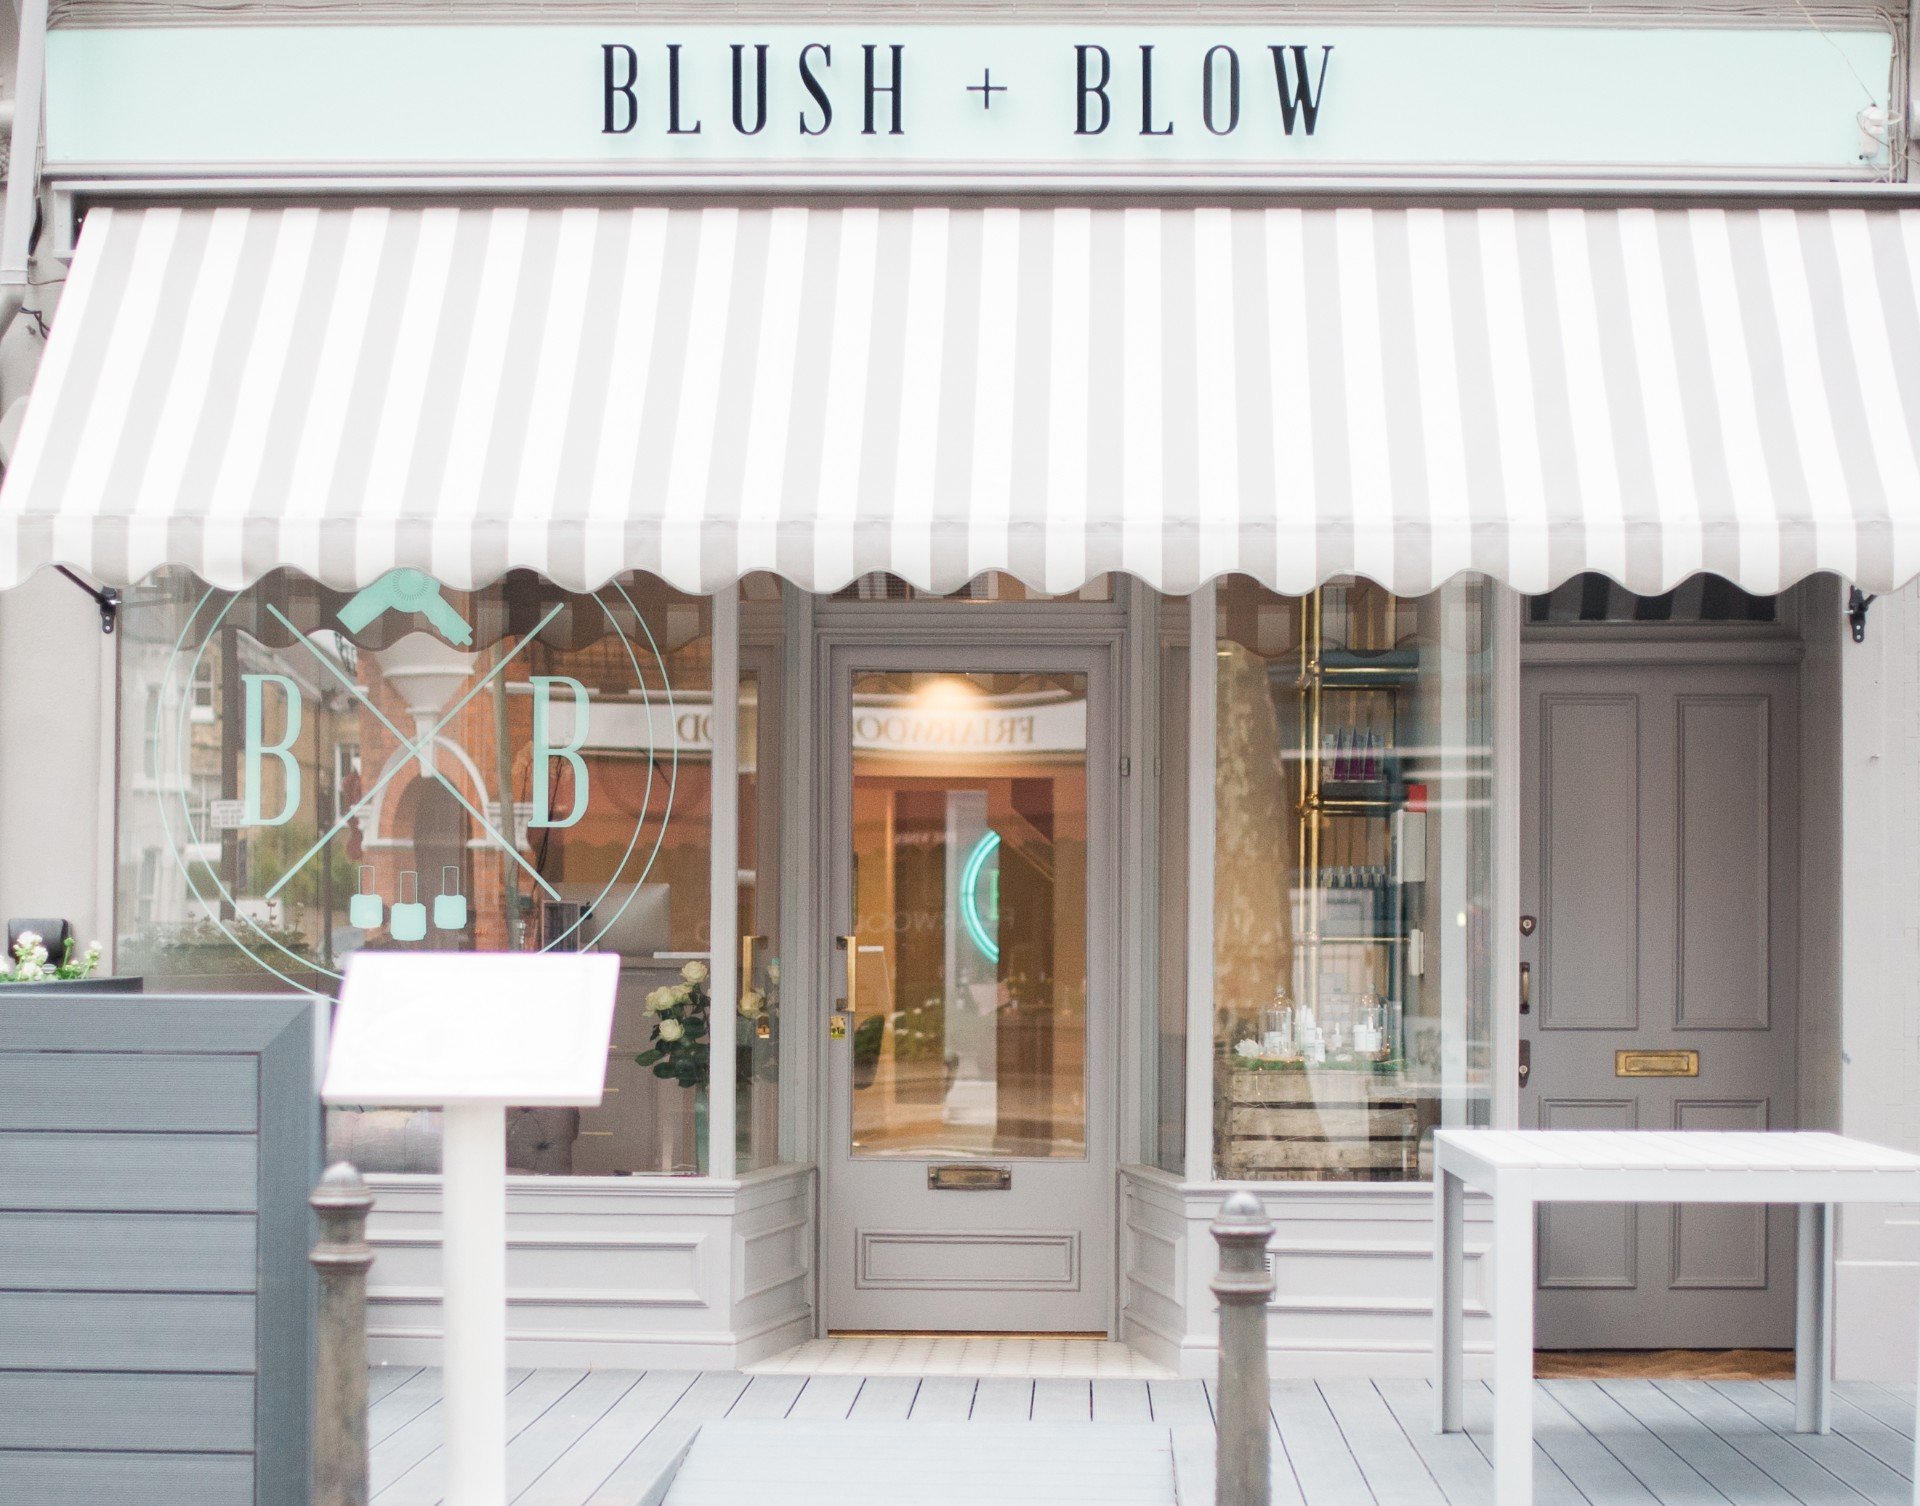 blush-blow-brow-lamination-bridal-beauty-treatments